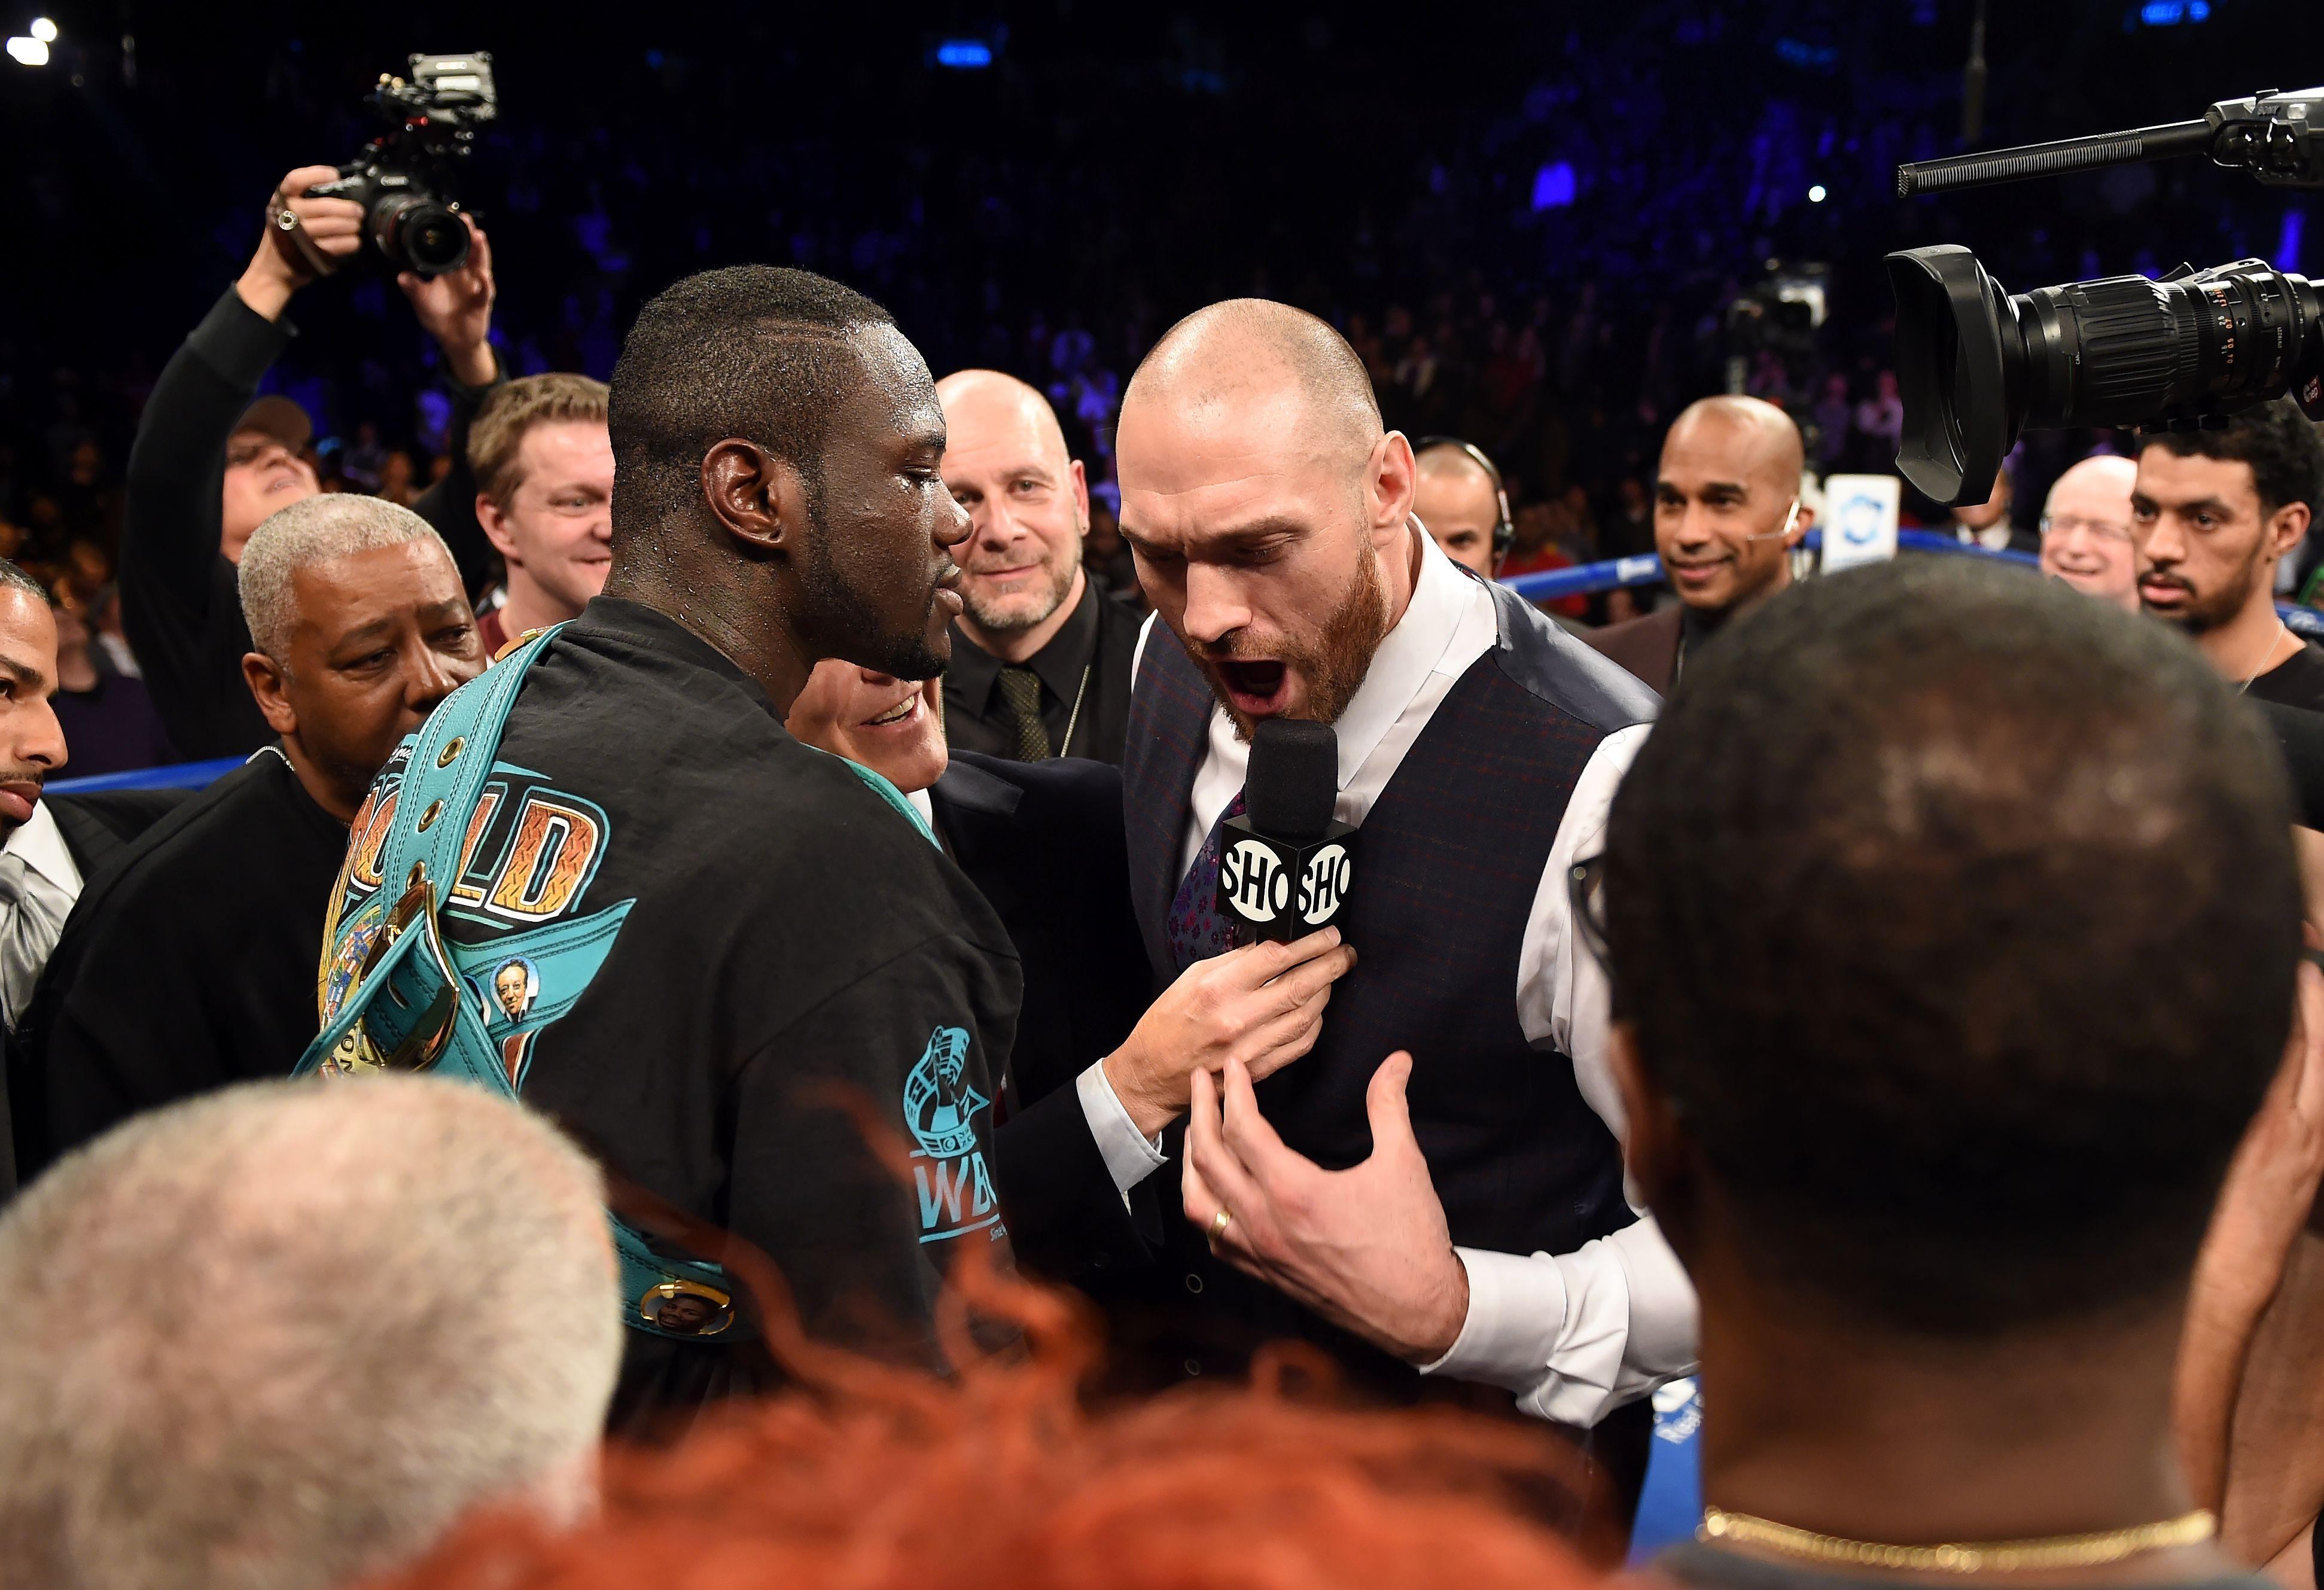 Tyson Fury, right, says he would fight Deontay Wilder, left, for free